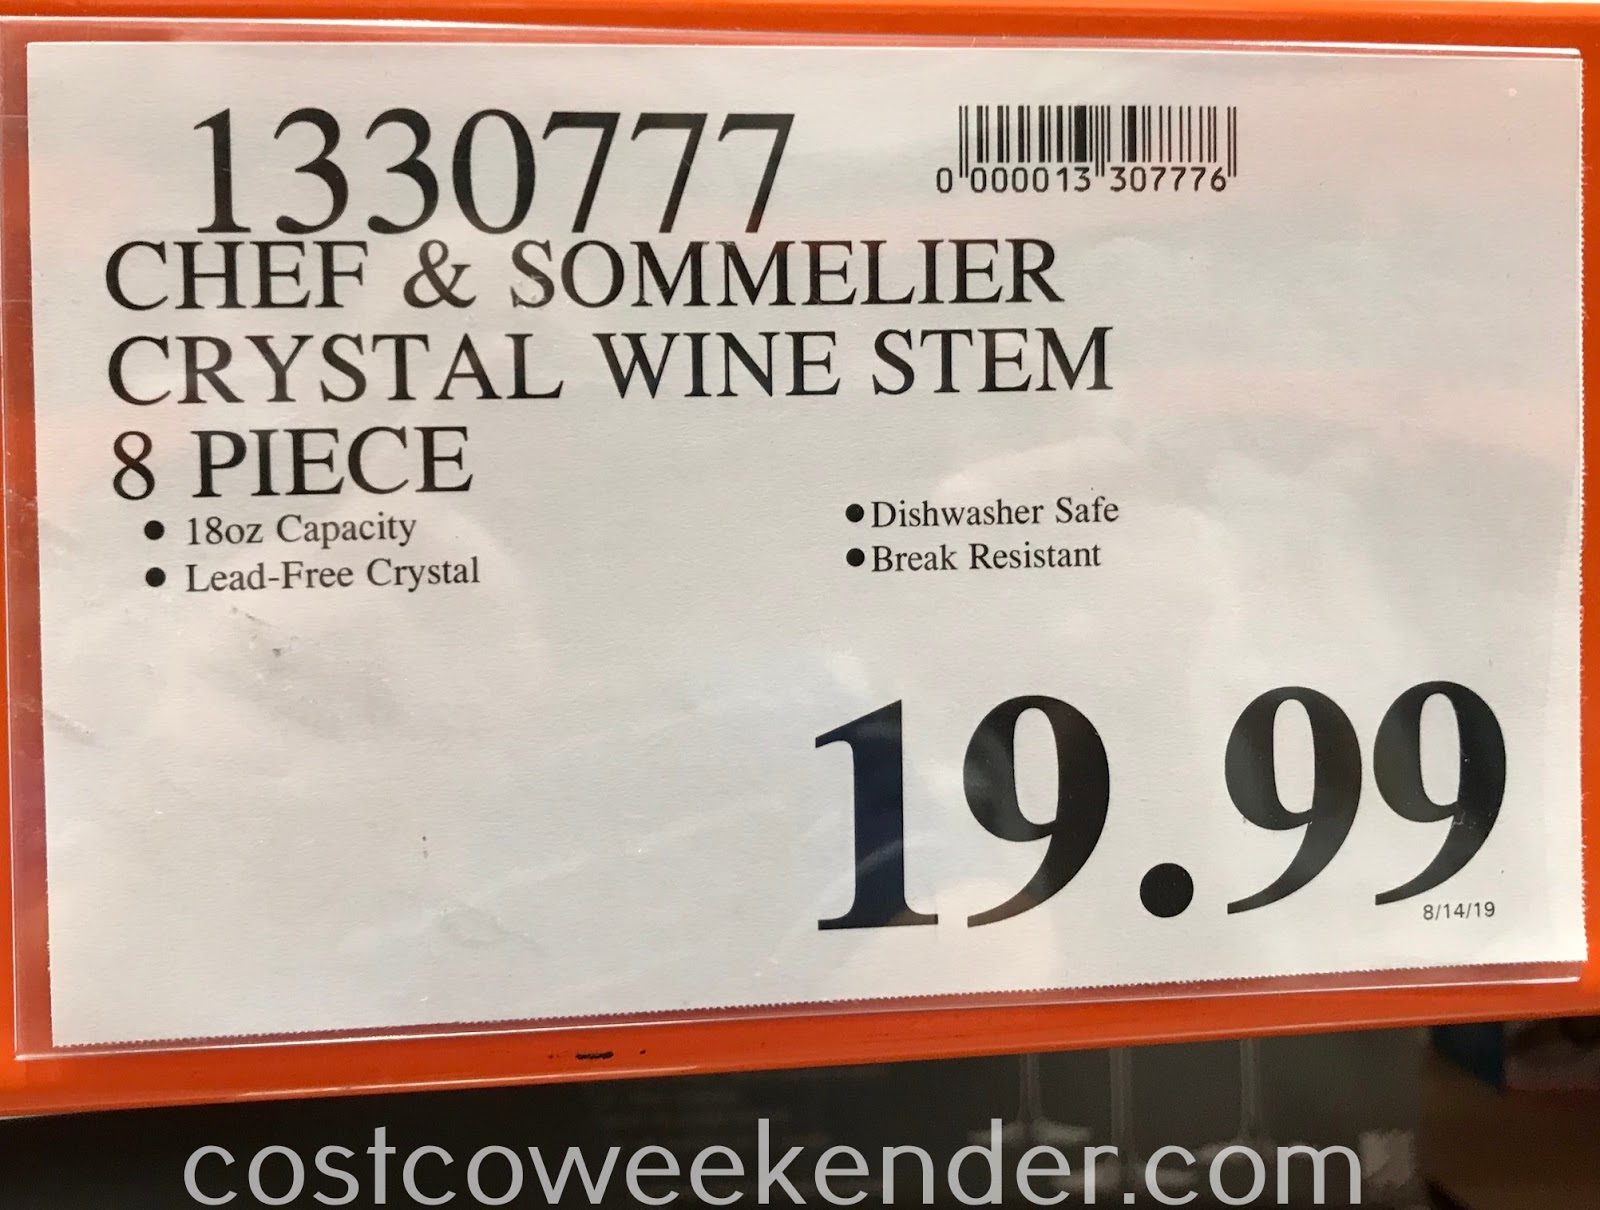 Deal for an 8-piece stemwware Chef & Sommelier Crystal Wine Glasses at Costco